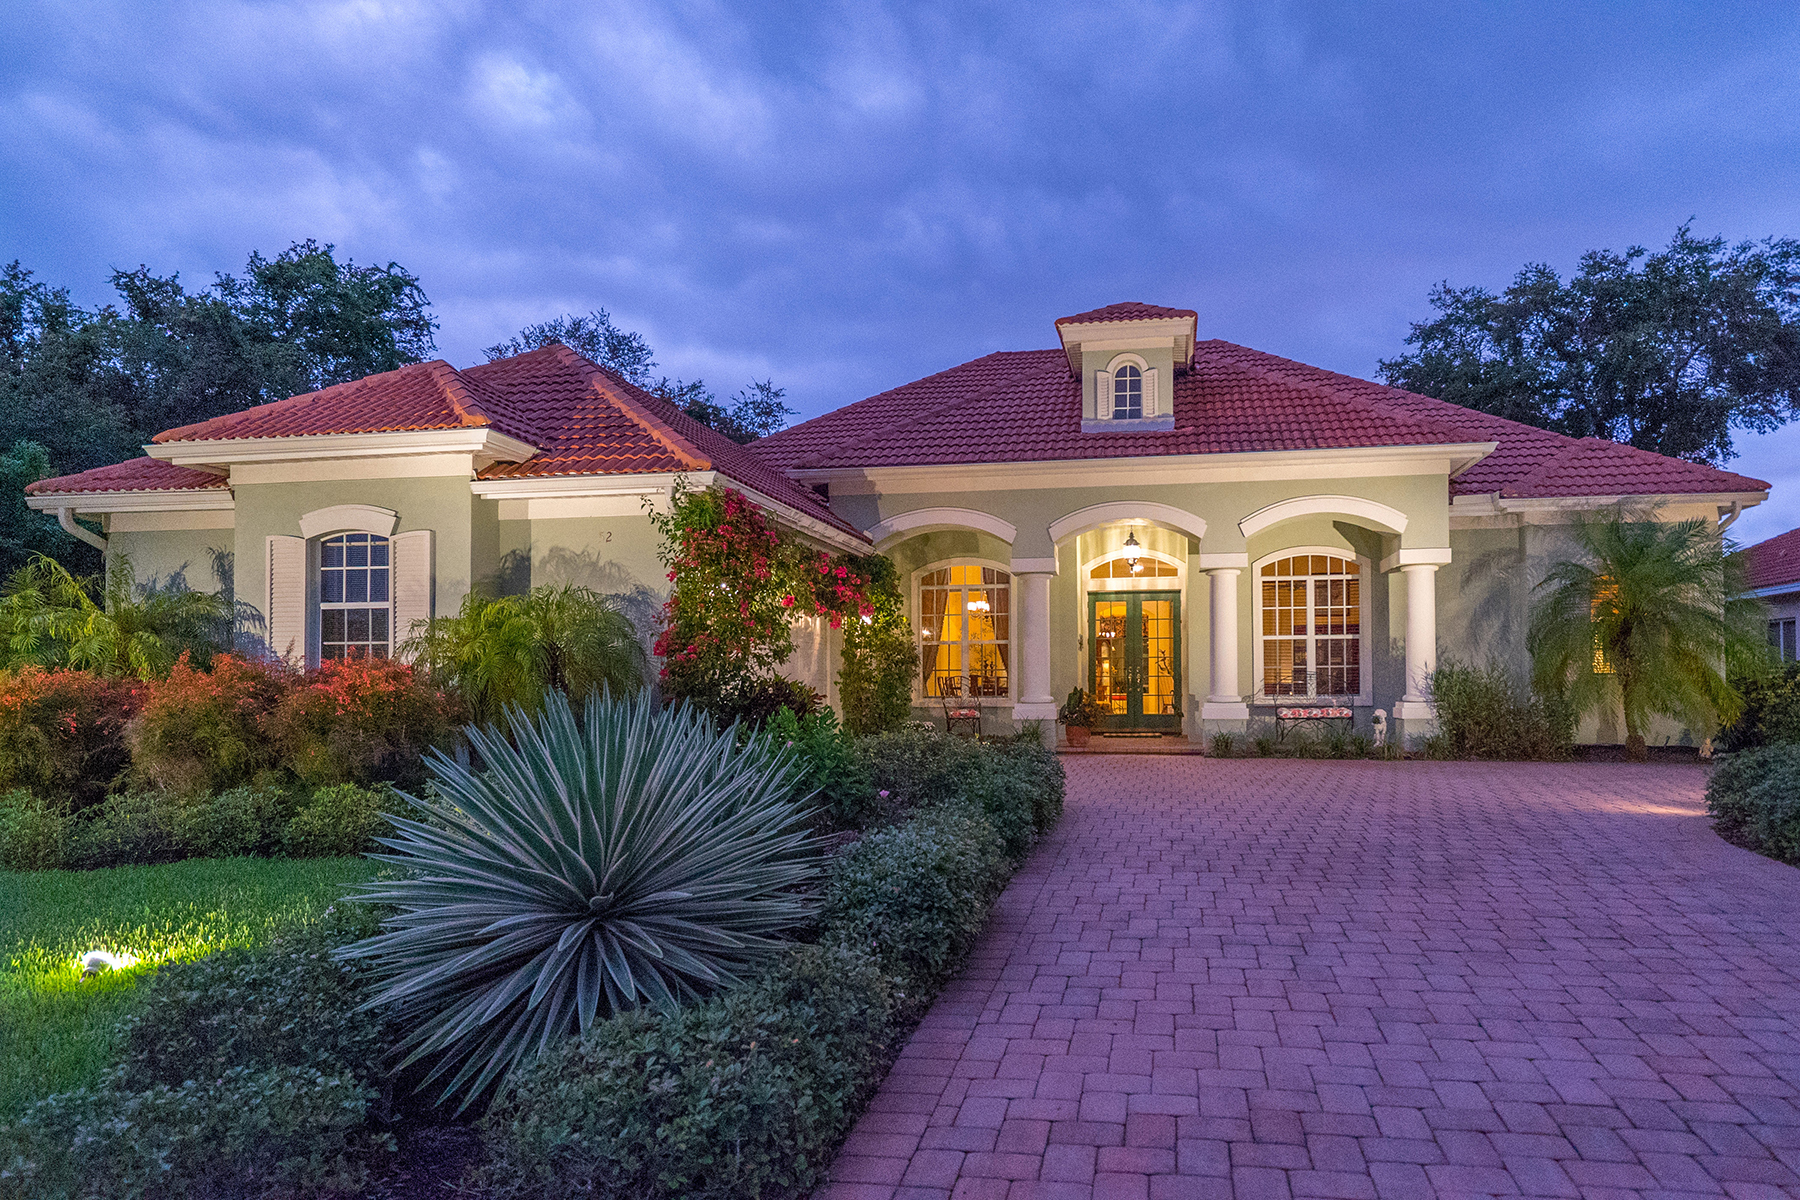 Single Family Home for Sale at BOCA ROYALE 52 Grande Fairway Englewood, Florida 34223 United States